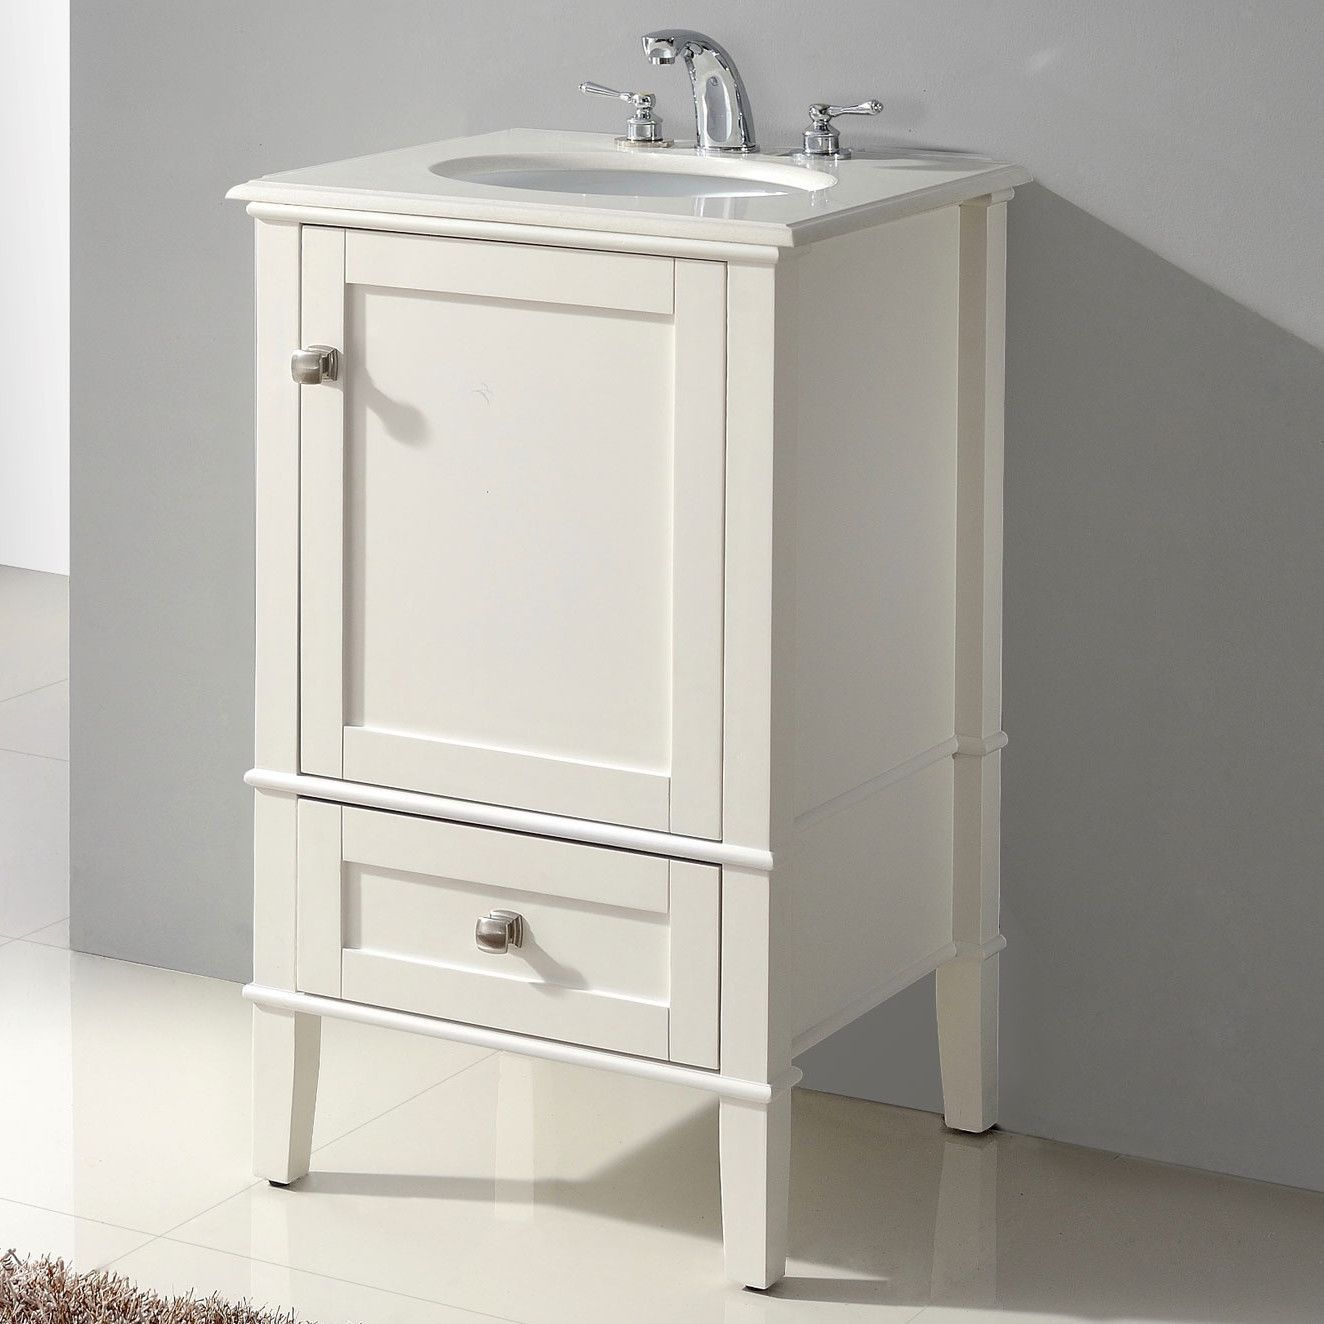 21 Inch Single Bathroom Vanity Set With Off White Marble Top Bathroom Vanity Small Bathroom Vanities Single Bathroom Vanity